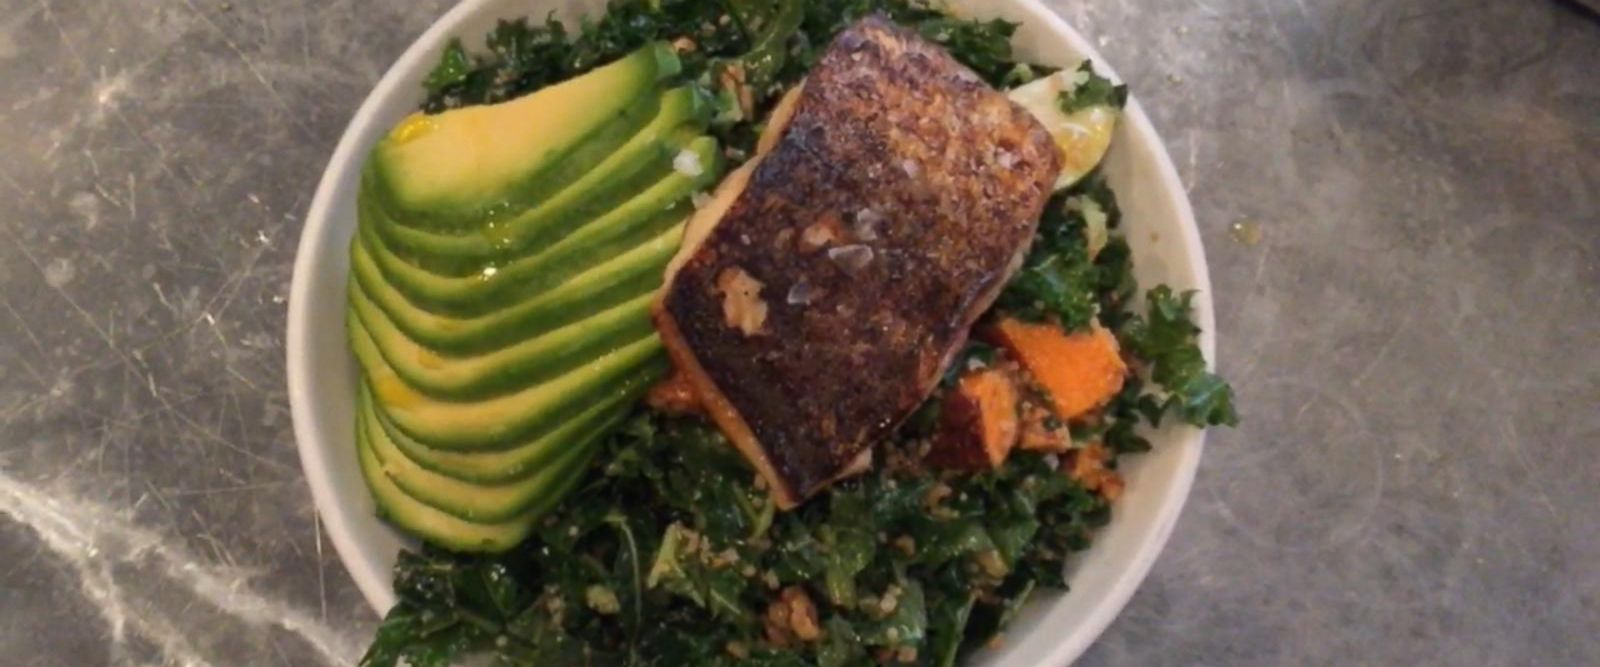 VIDEO: Kale and Avocado Salad with Mackerel